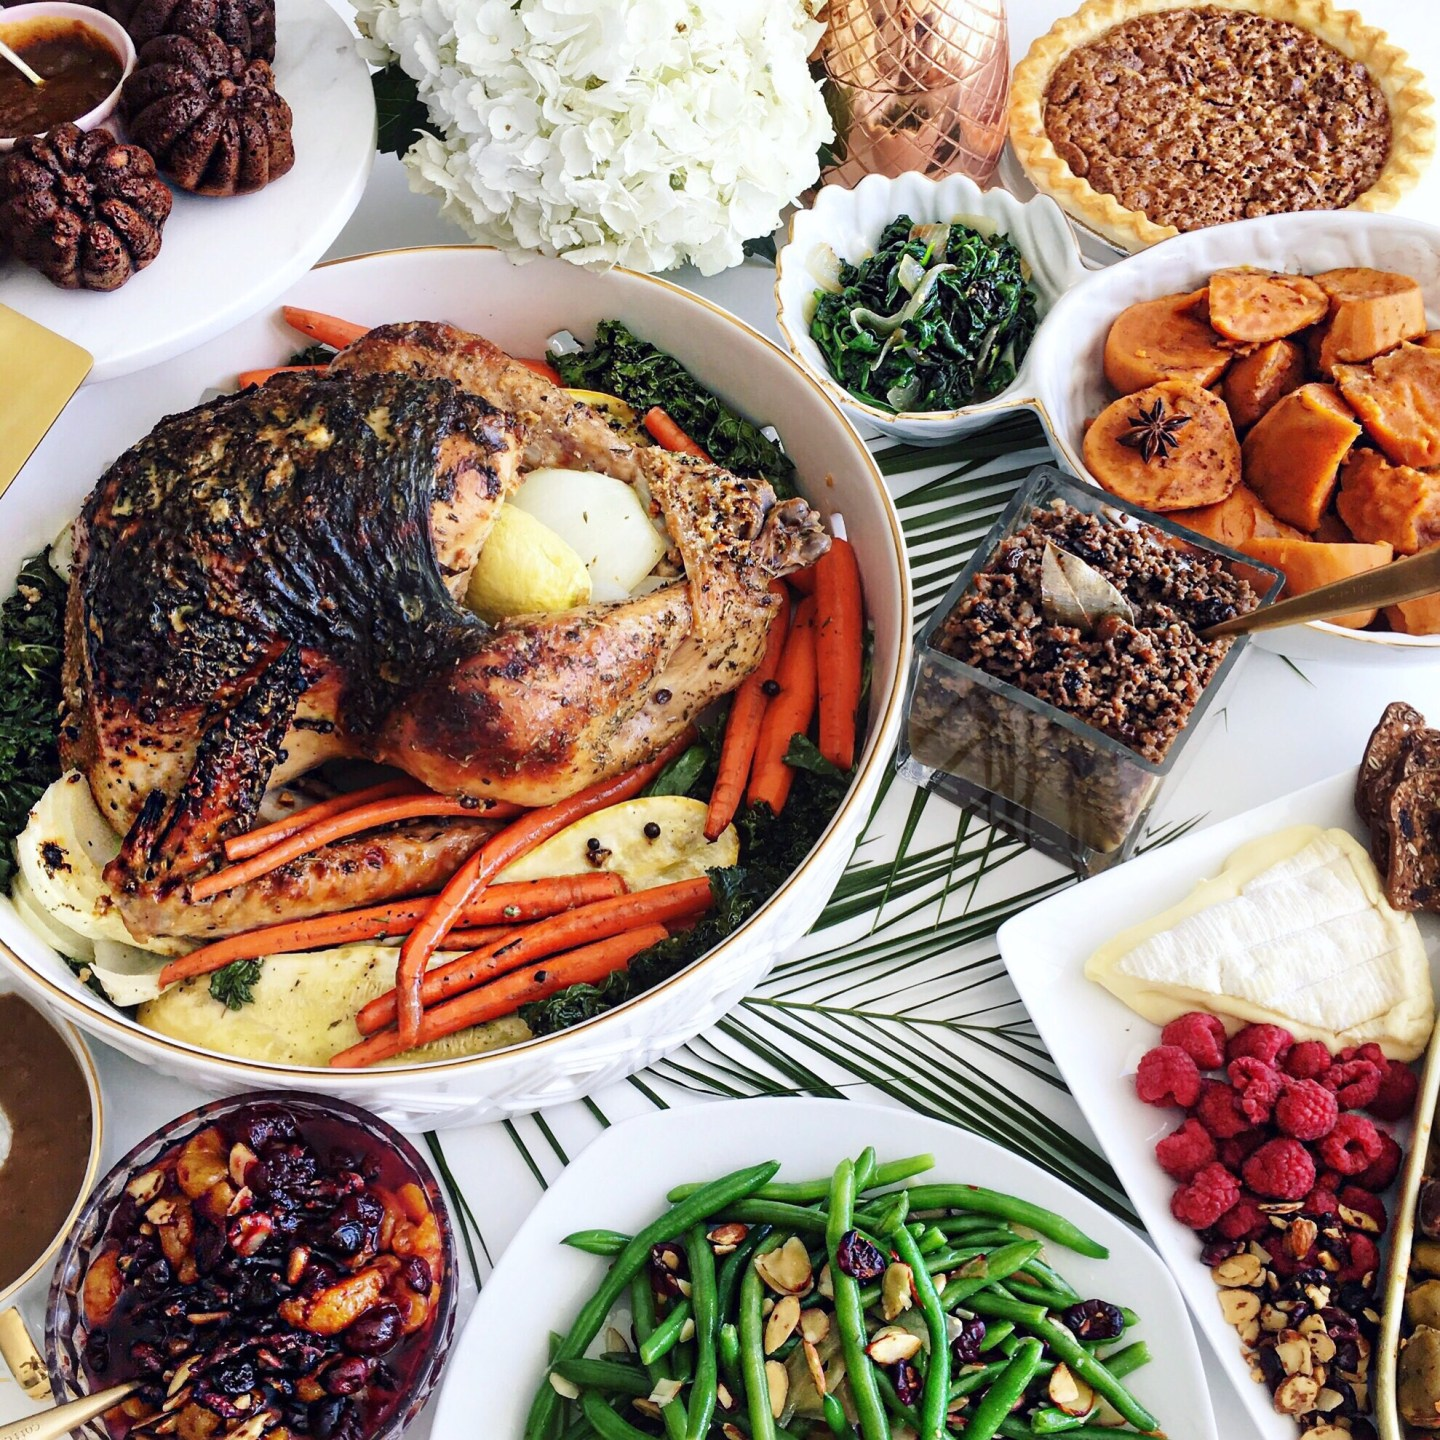 5 Delicious Holiday Recipes Inspired by Miami Spice and Carribean Flavors